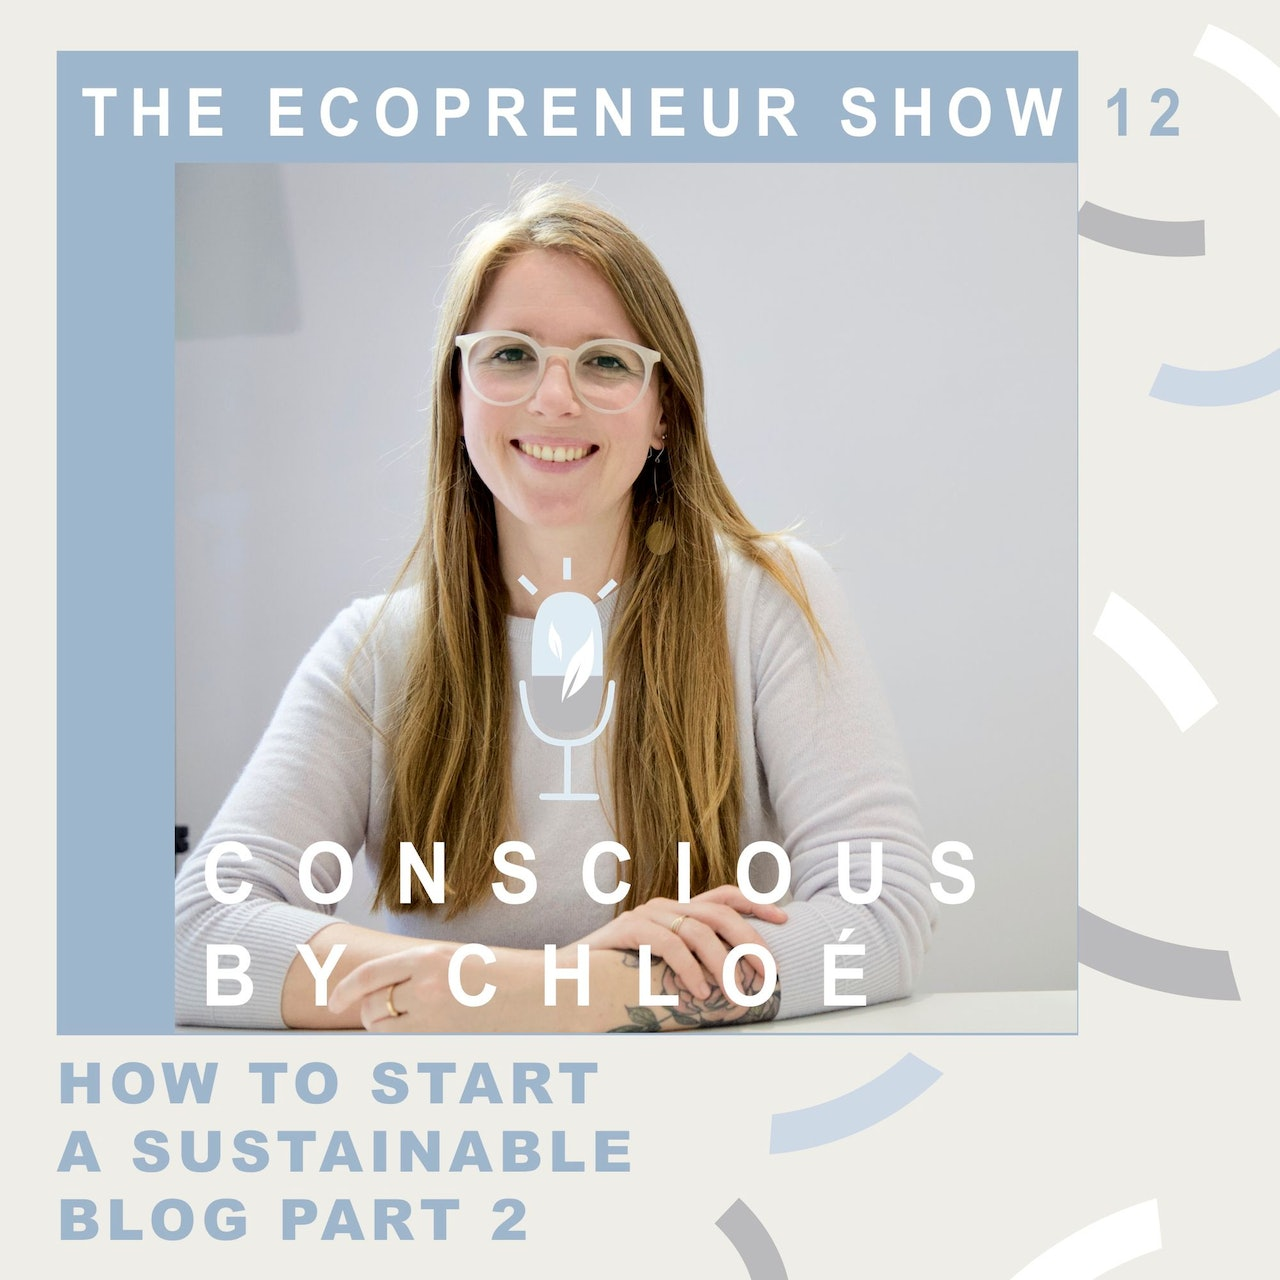 The Ecopreneur Show by Vanina Howan with Conscious by Chloé